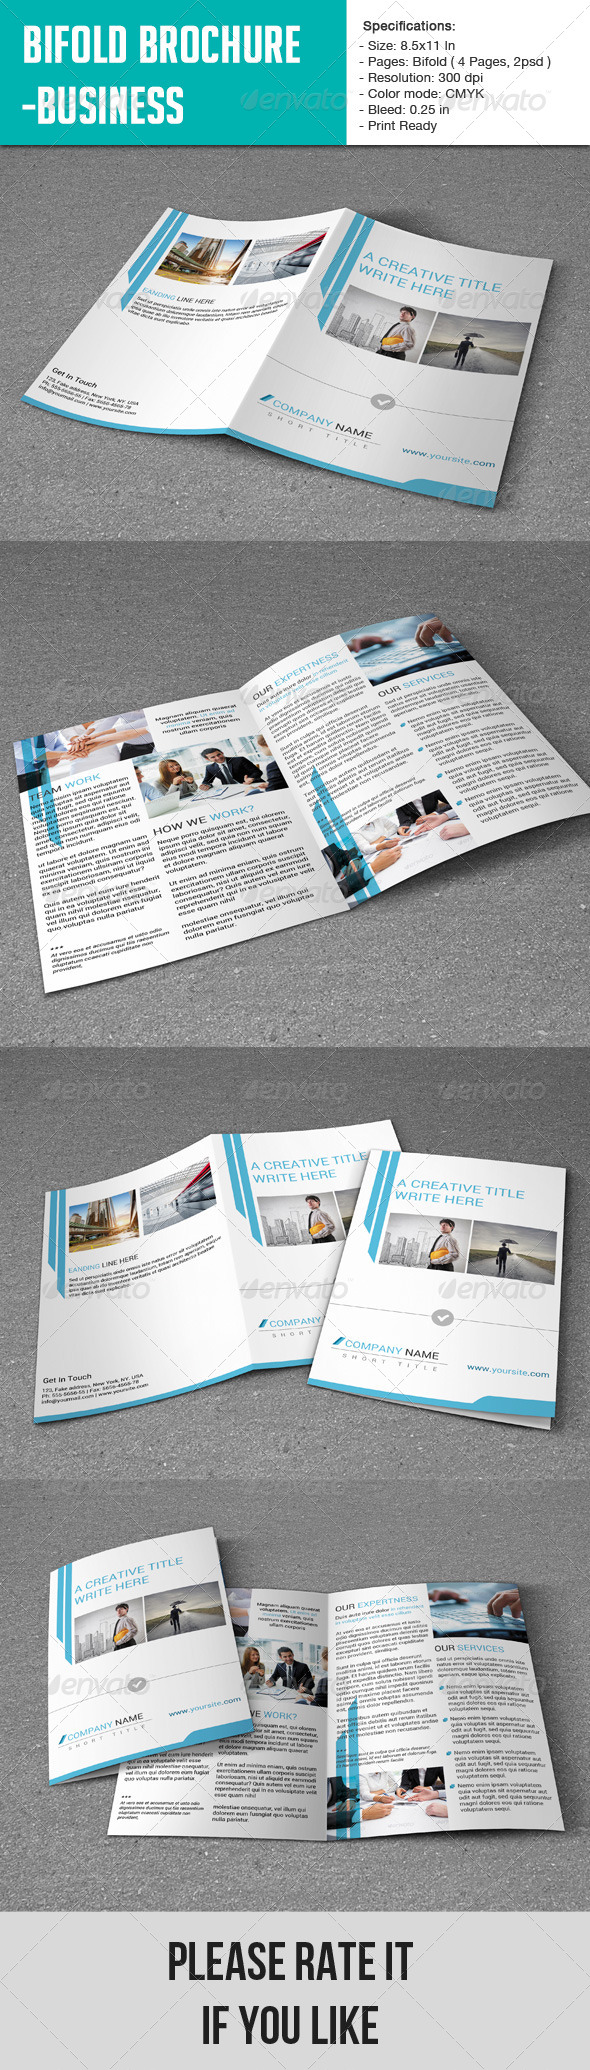 GraphicRiver Bifold Brochure- Business 6926356